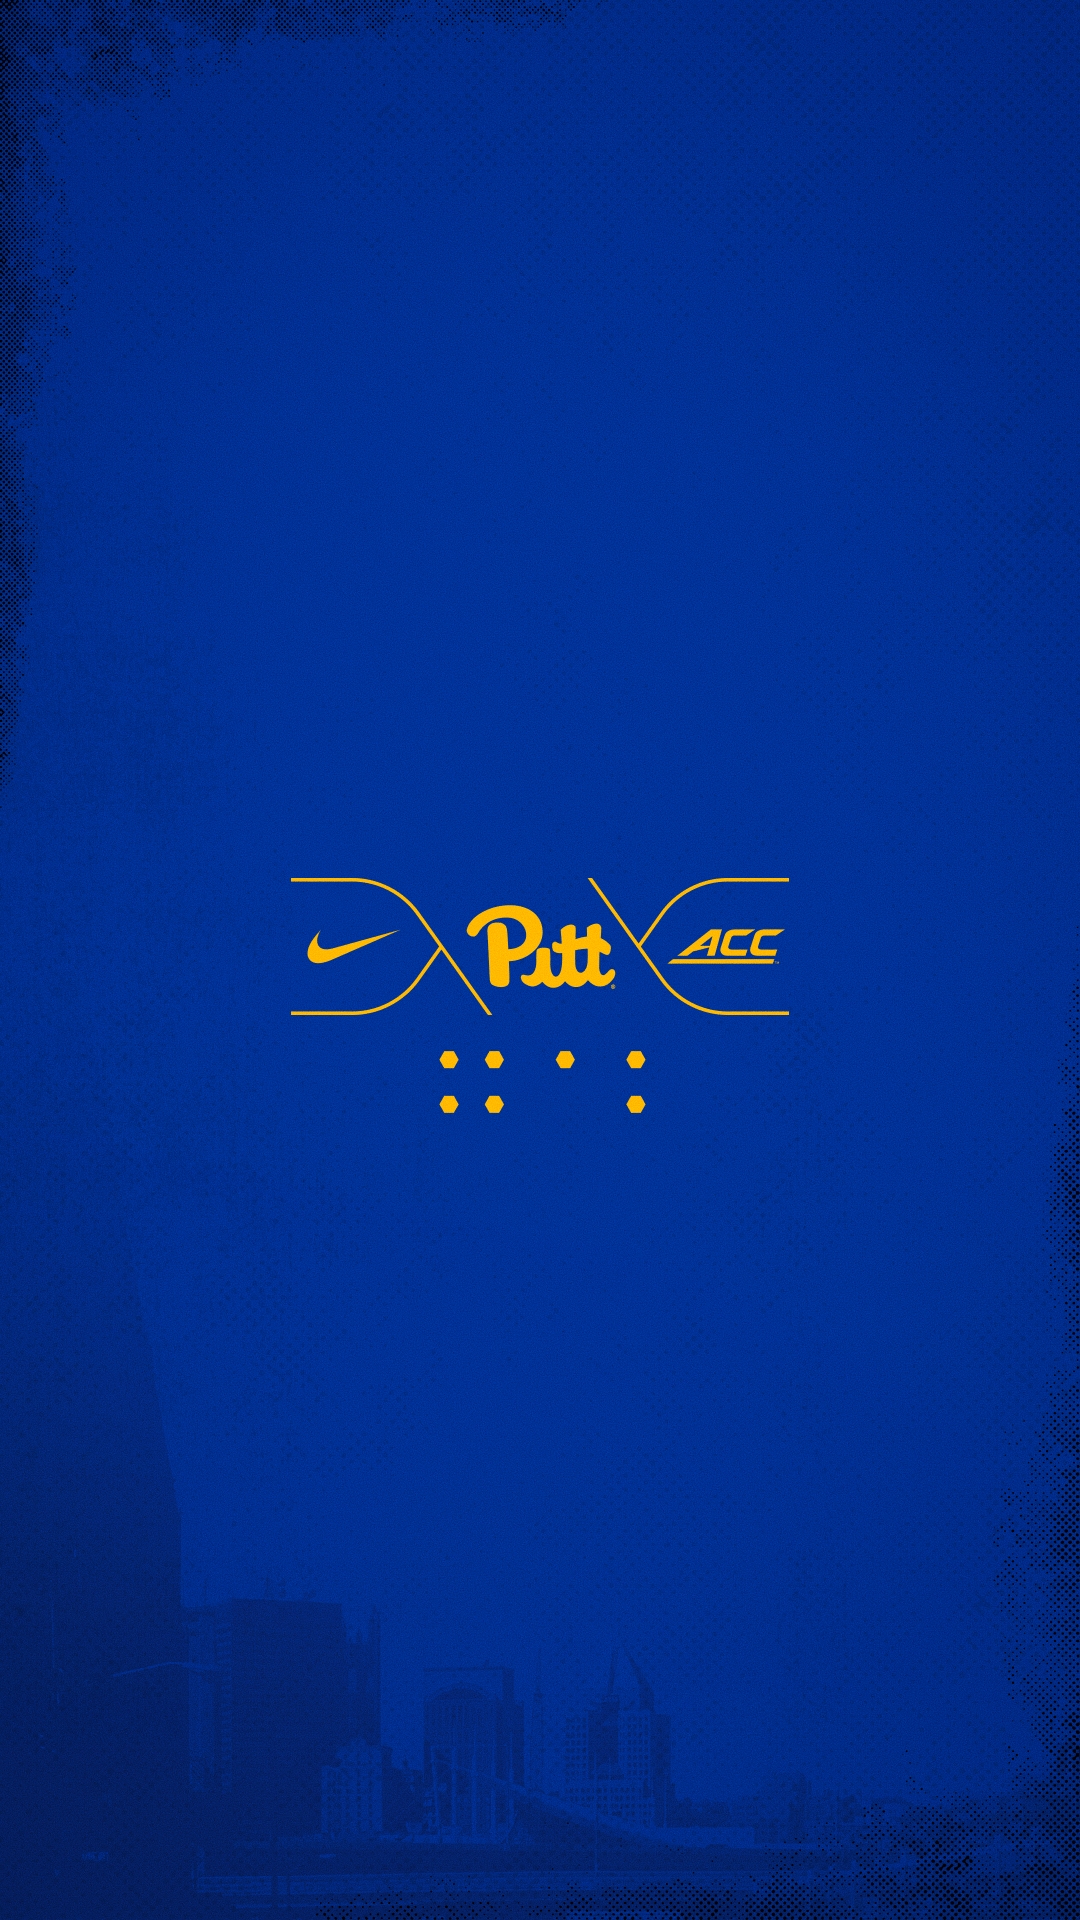 Wallpaper Mobile And Desktop Pitt Panthers H2p